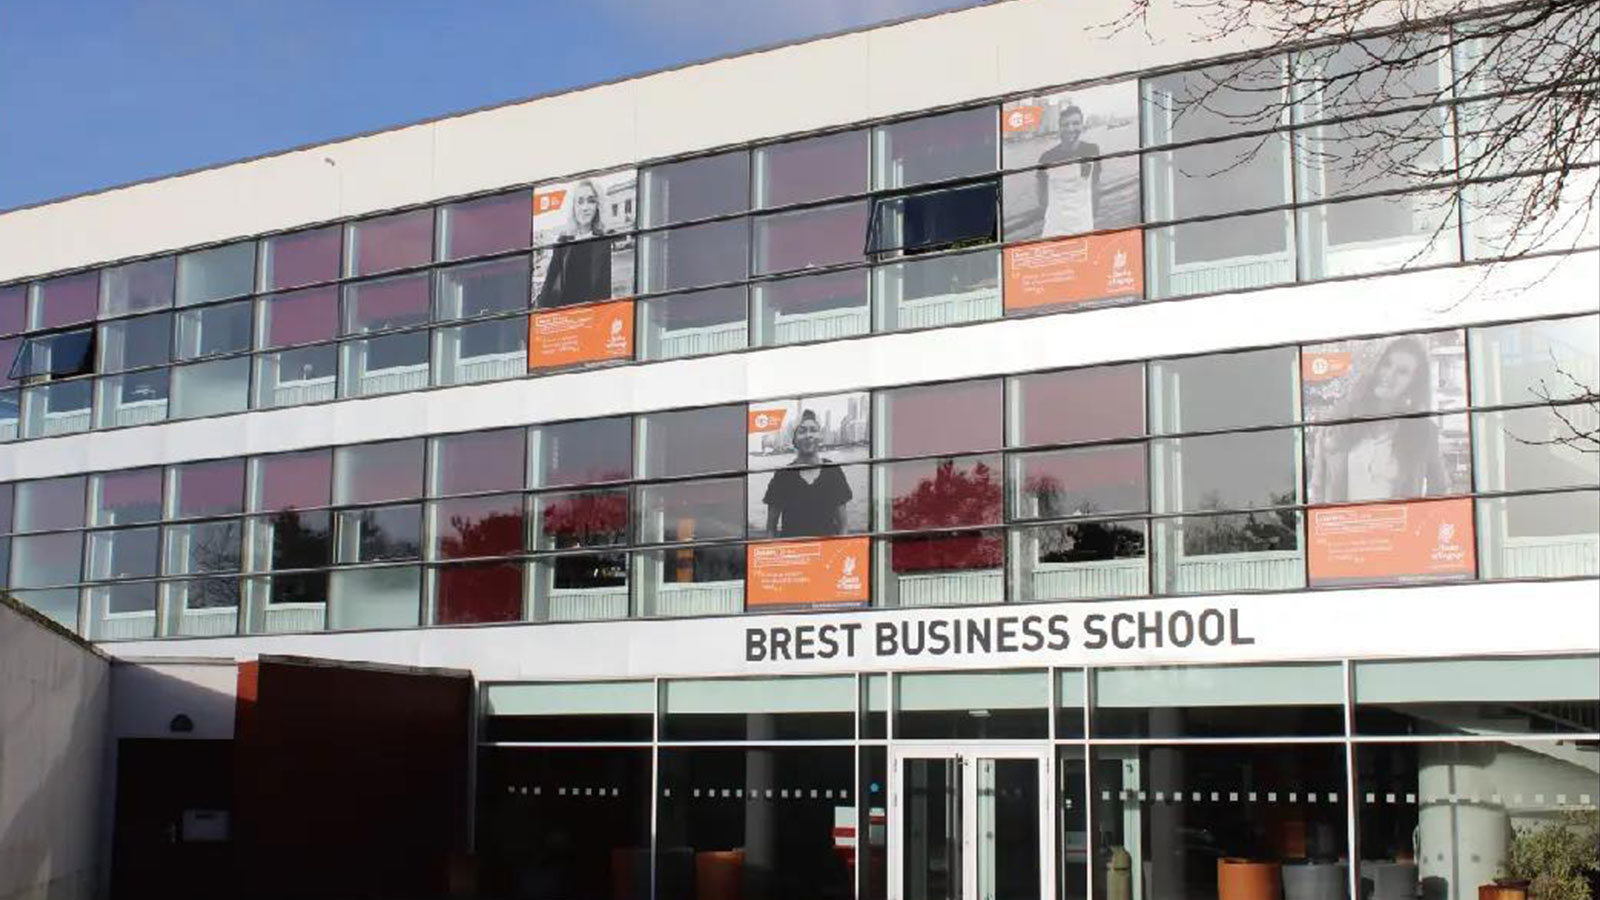 CDA and Bay Bay Education reached a cooperation on training at Brest Business School in France